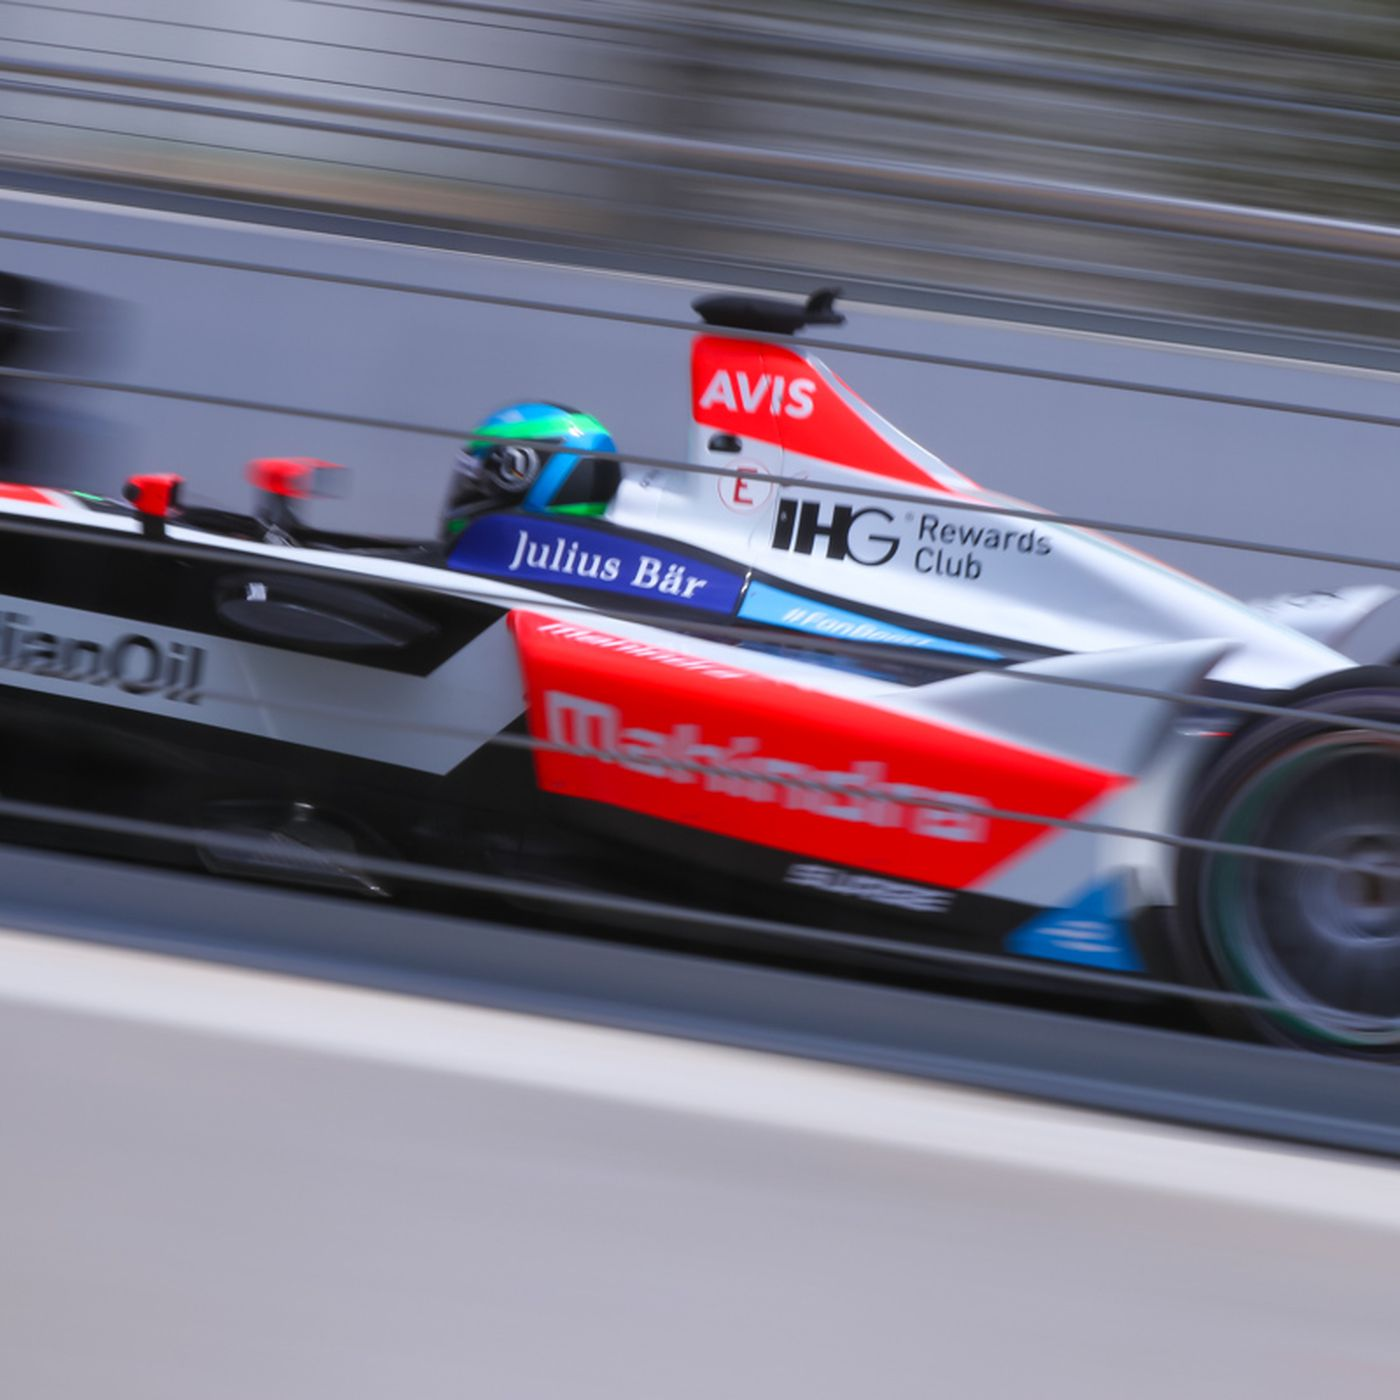 Software is winning (and losing) races in Formula E's second